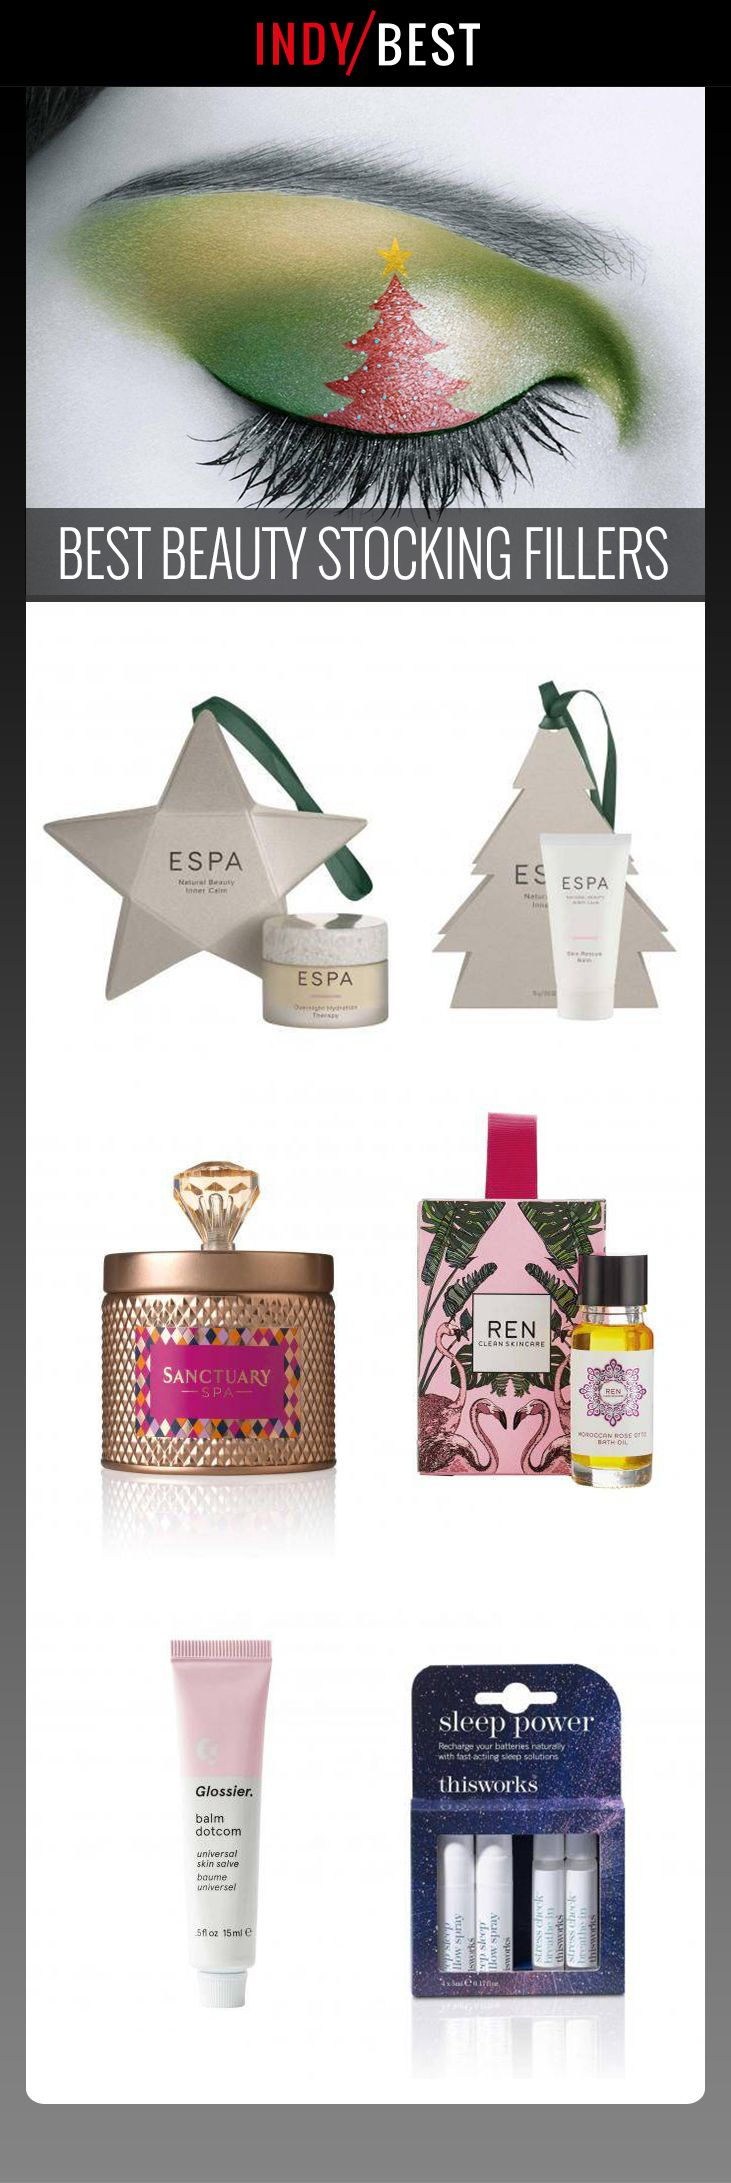 Here's our pick of the most luxurious beauty stocking fillers: https://ind.pn/2zIoDuL